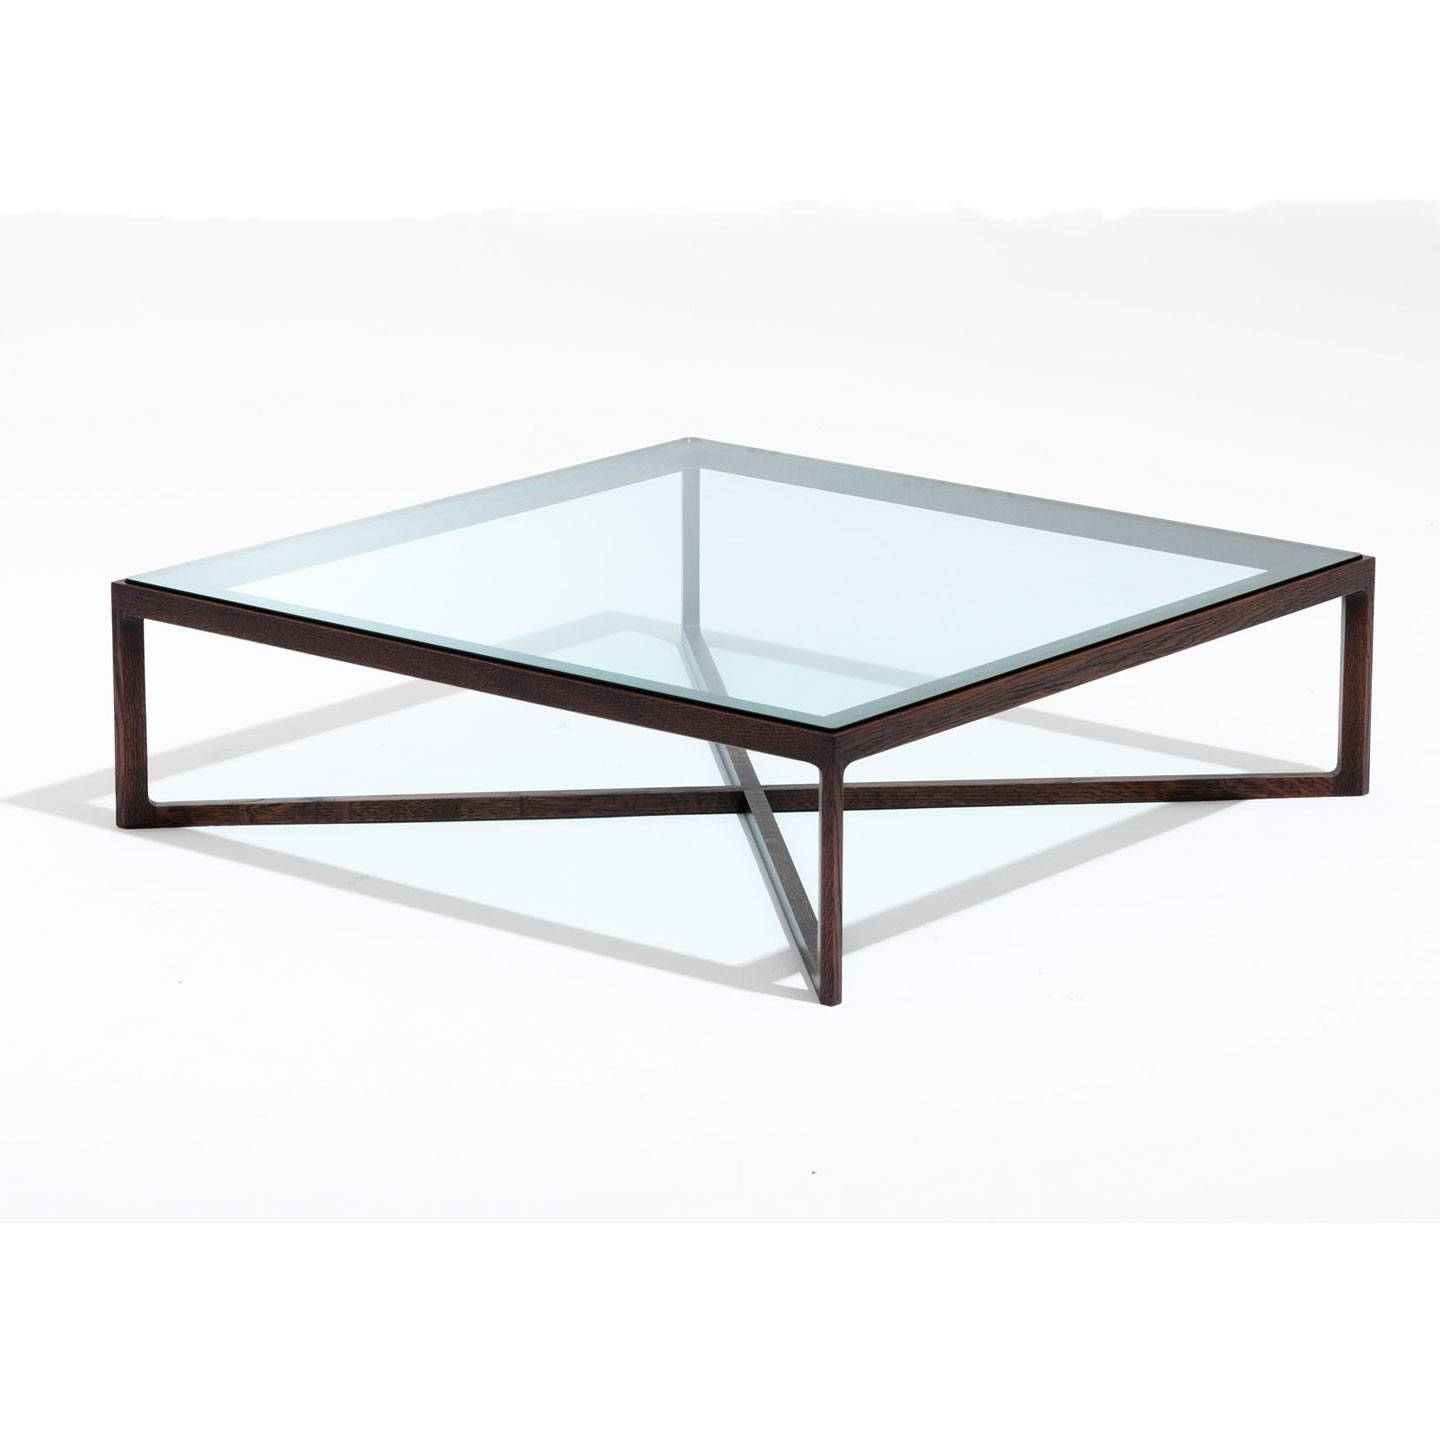 Black Metal And Glass Coffee Table | Coffee Tables Decoration for Metal Coffee Tables With Glass Top (Image 2 of 31)